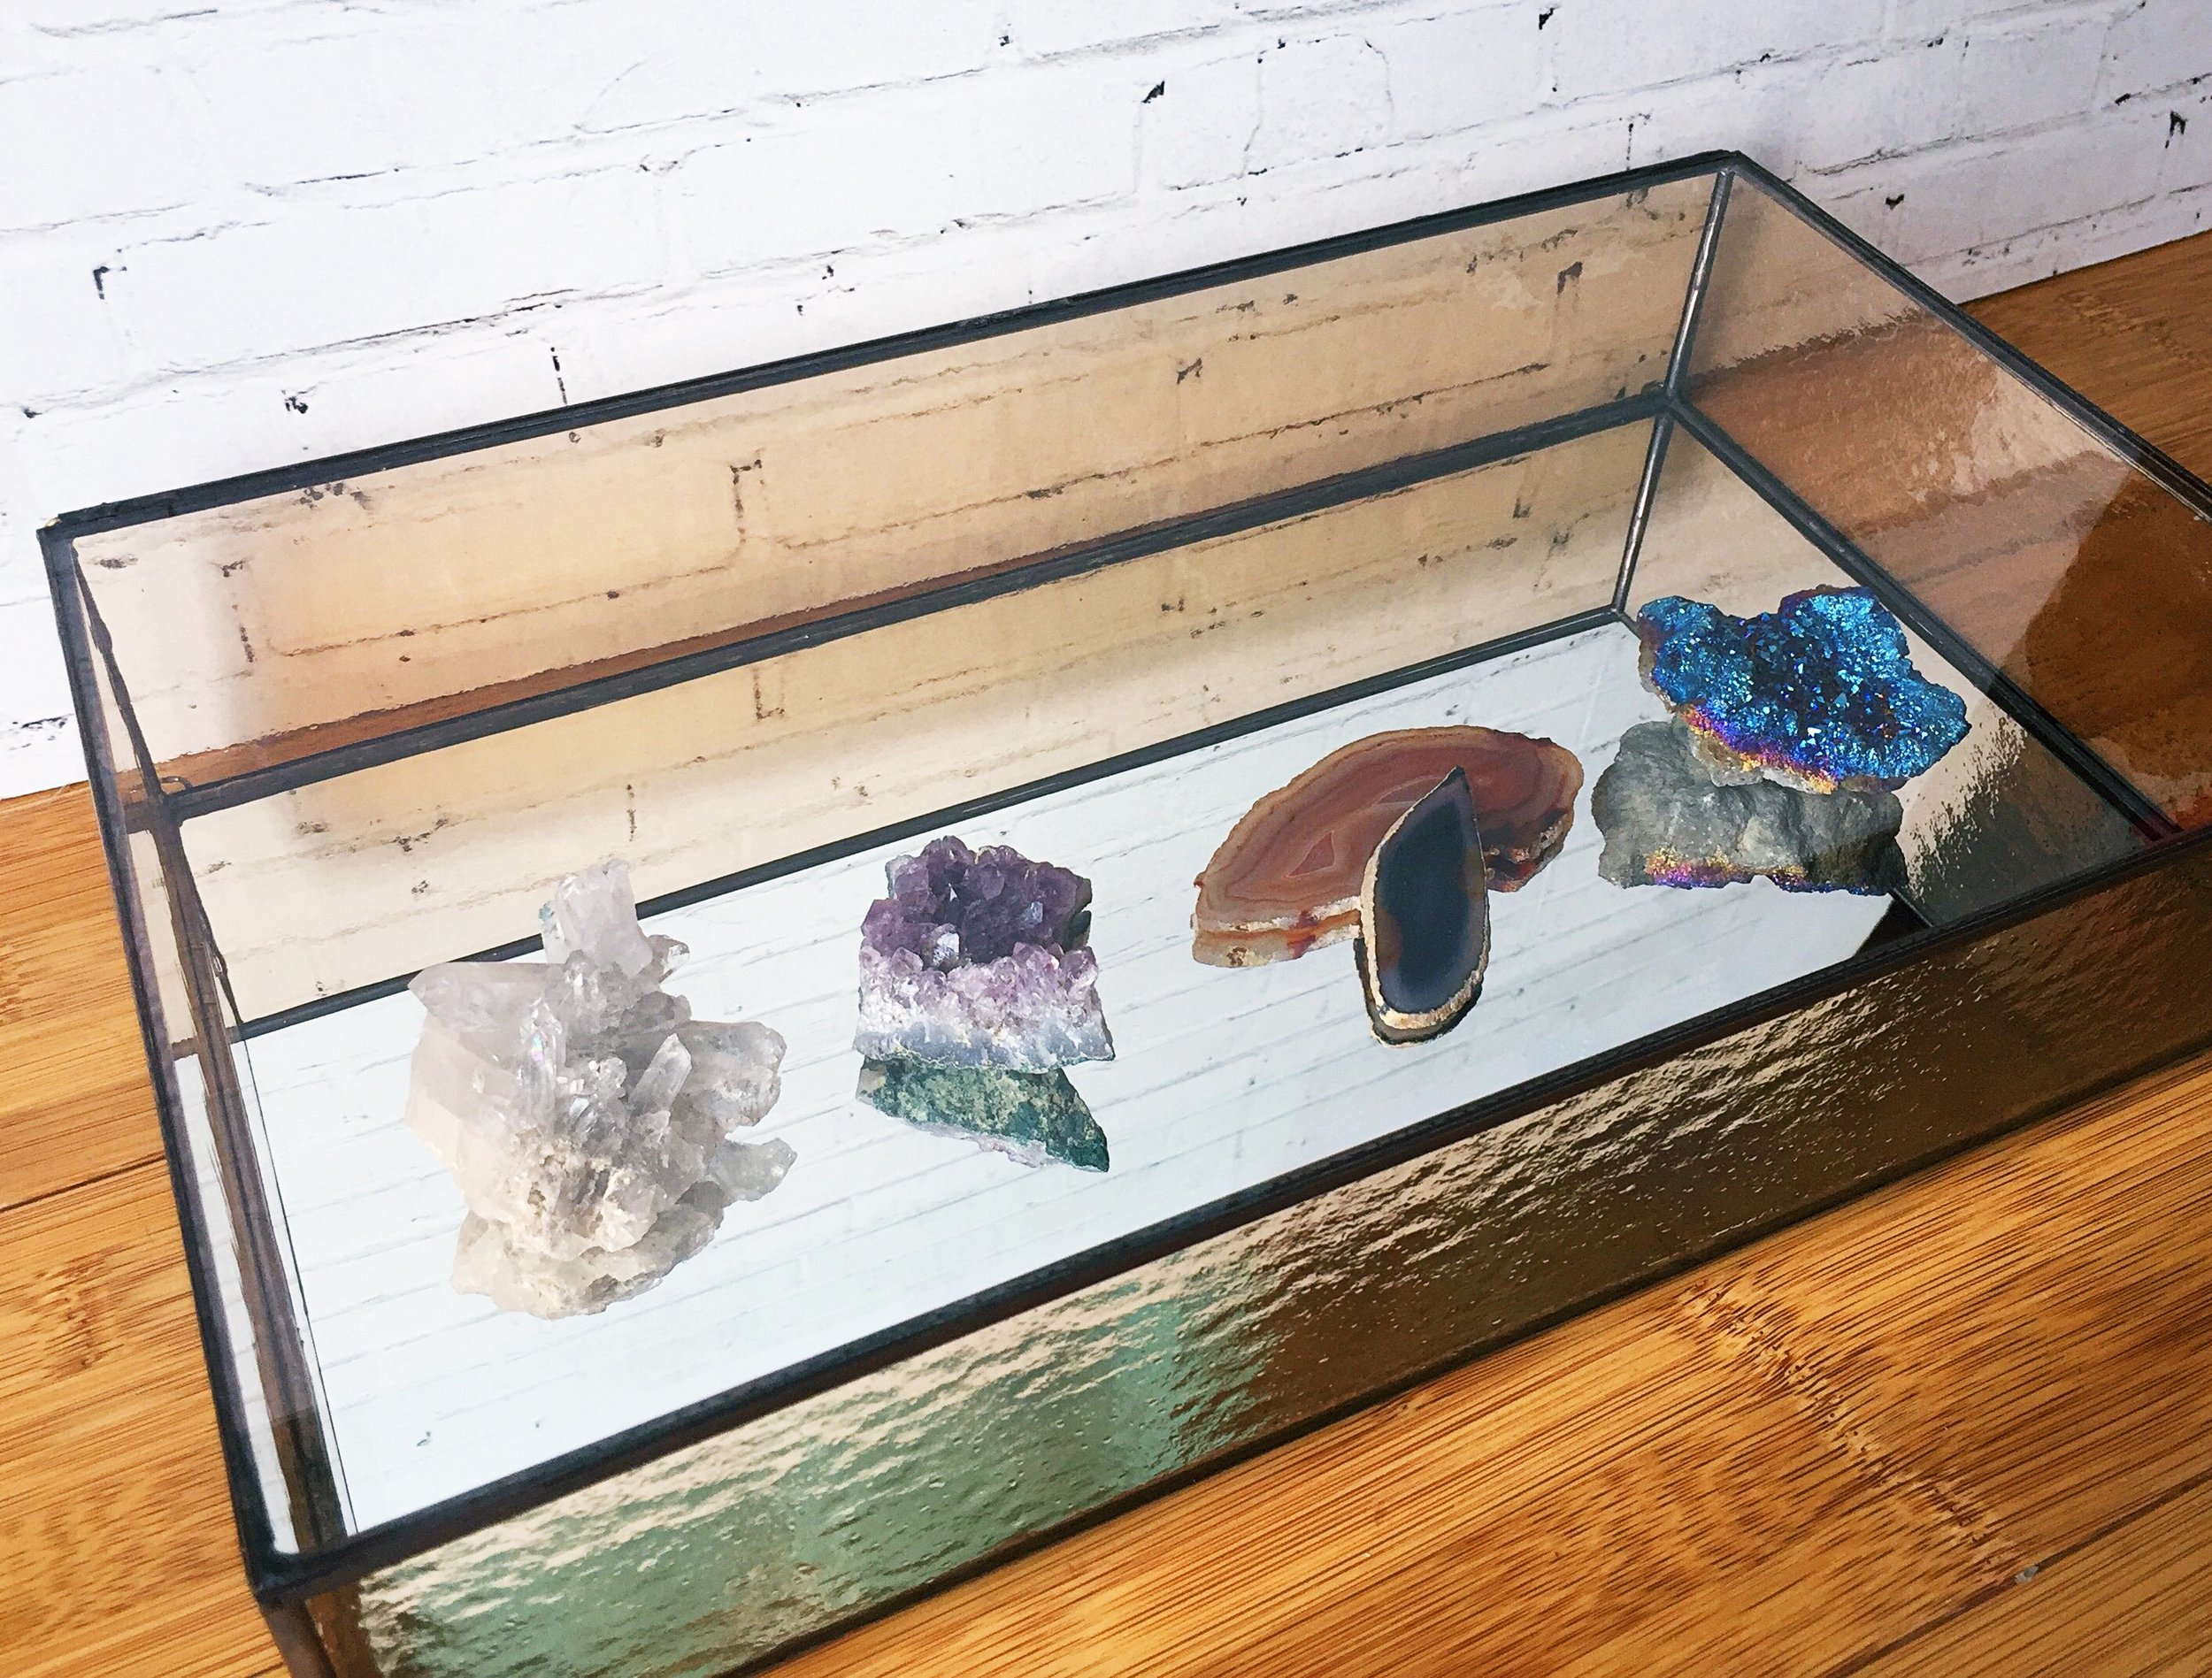 Jewelry Display Case for La Loba in Oakland